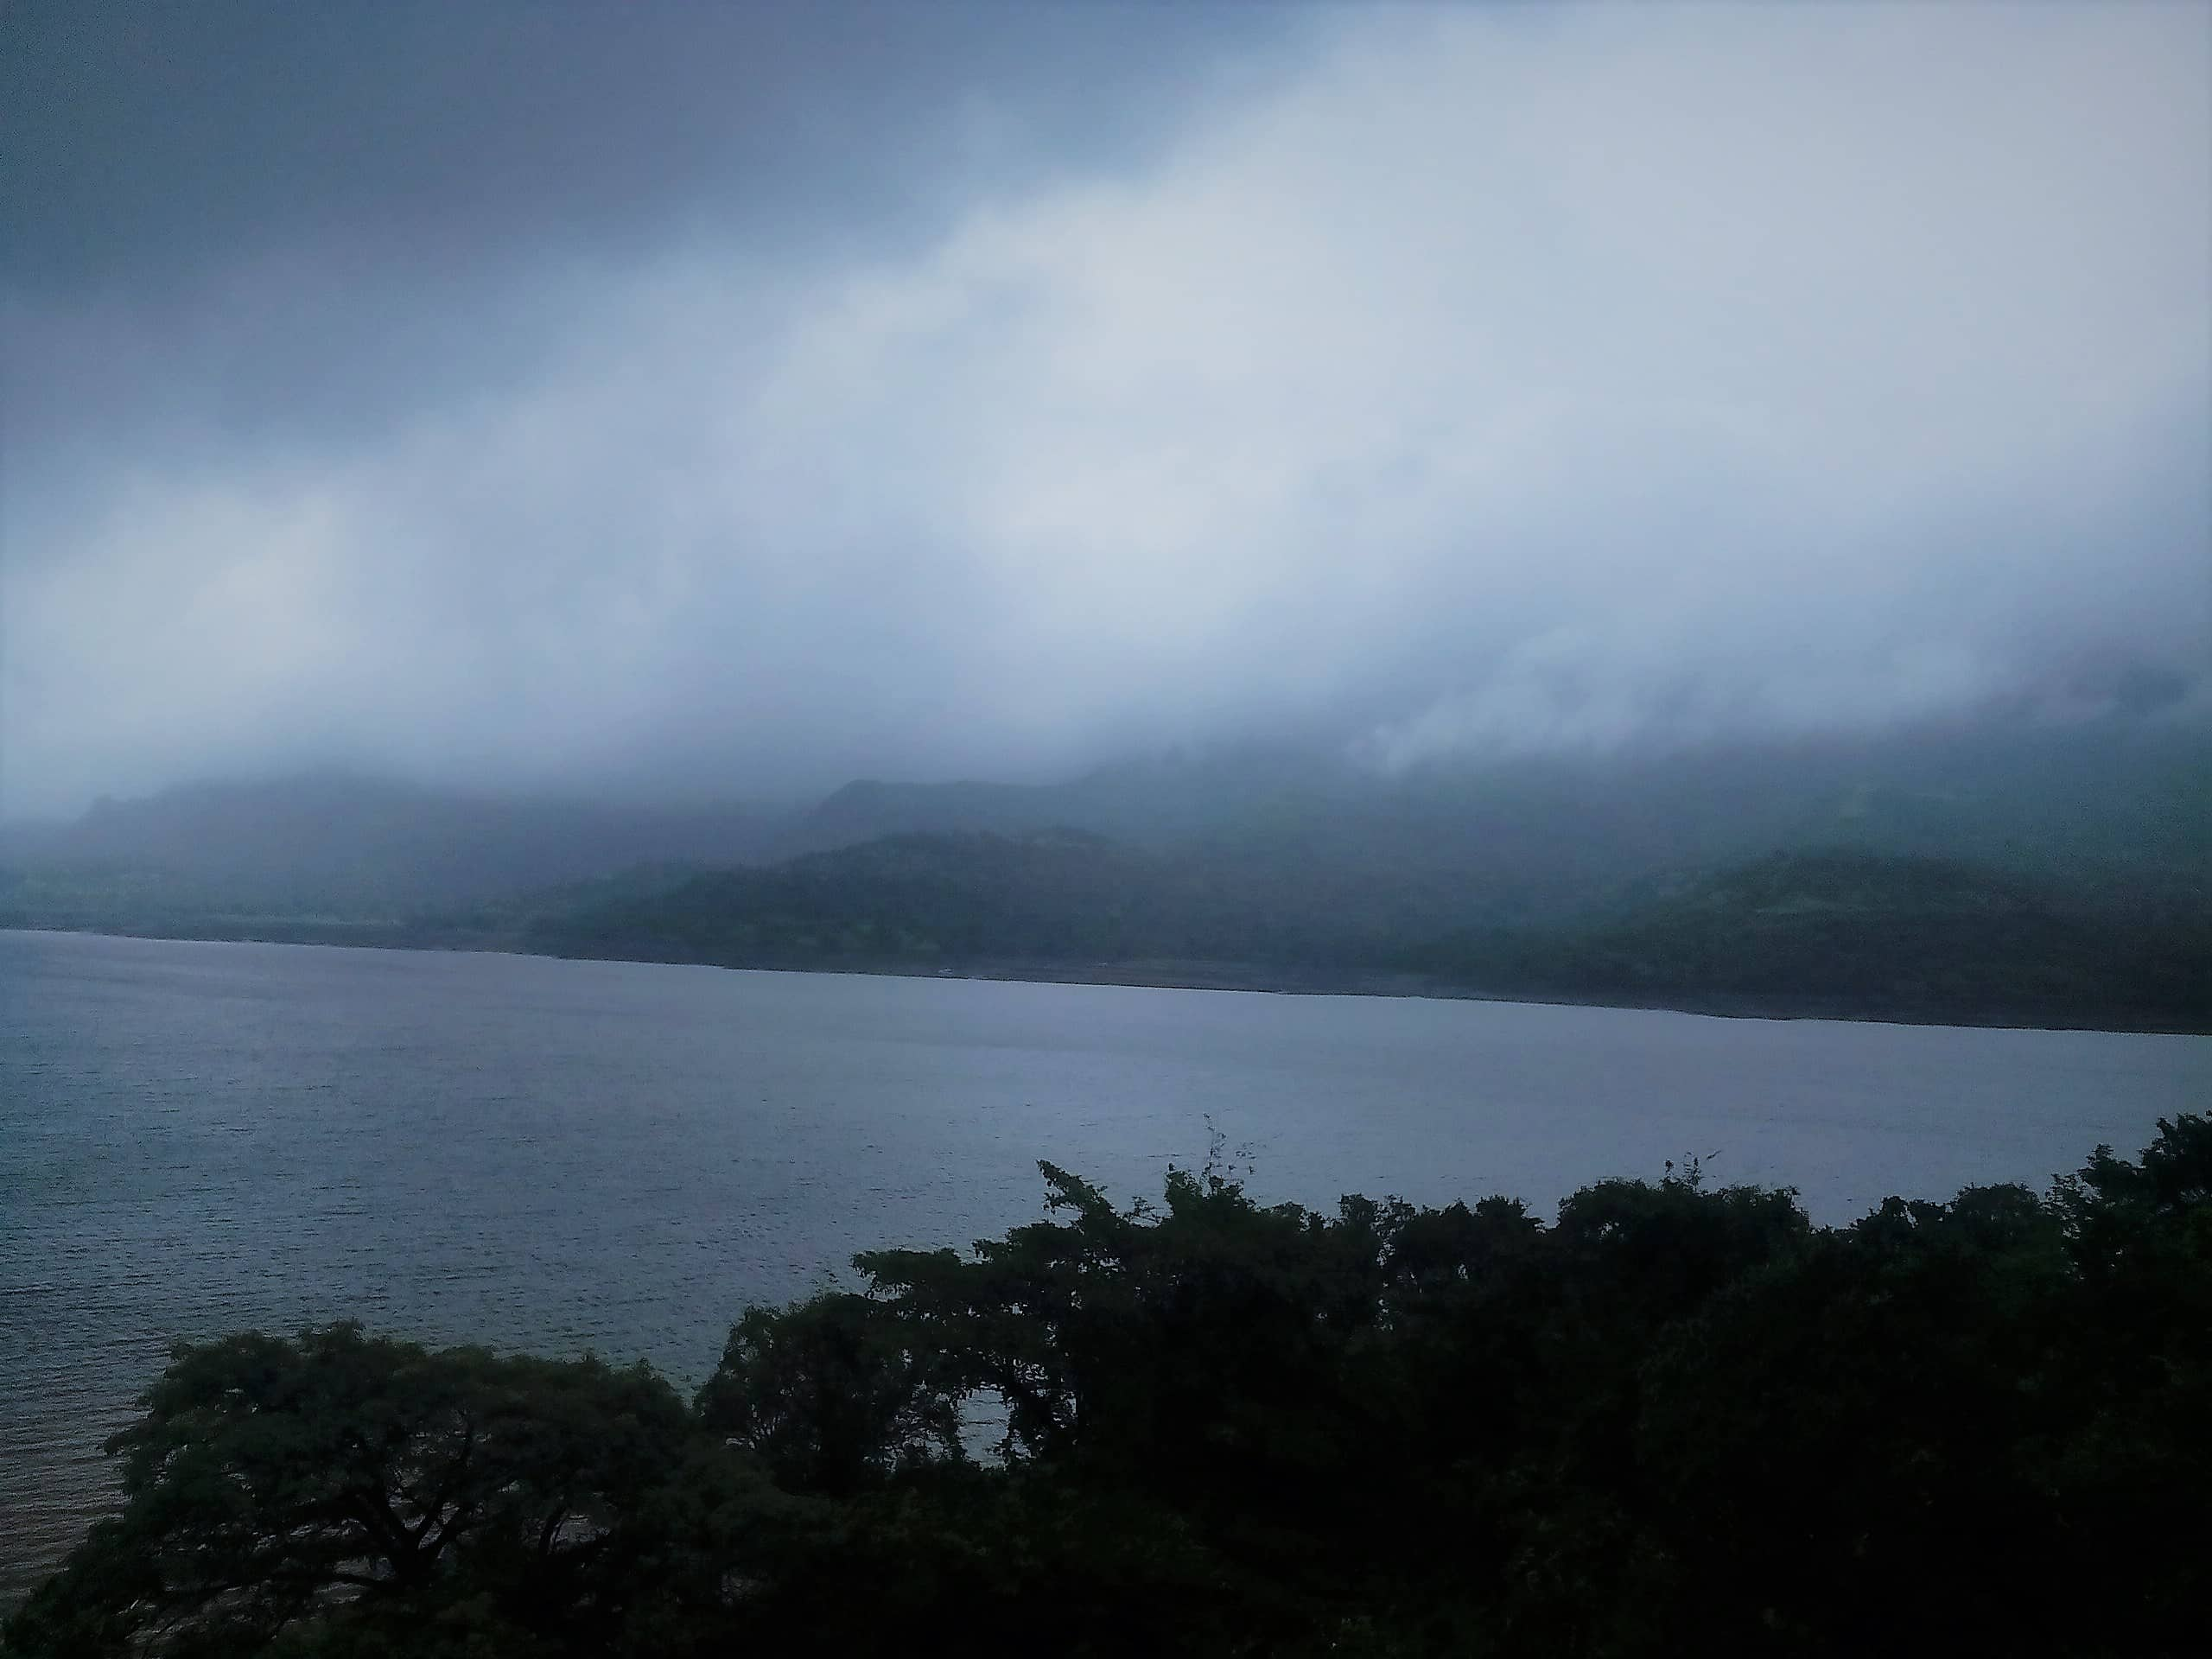 Mulshi Lake on the way to Tamhini Ghat